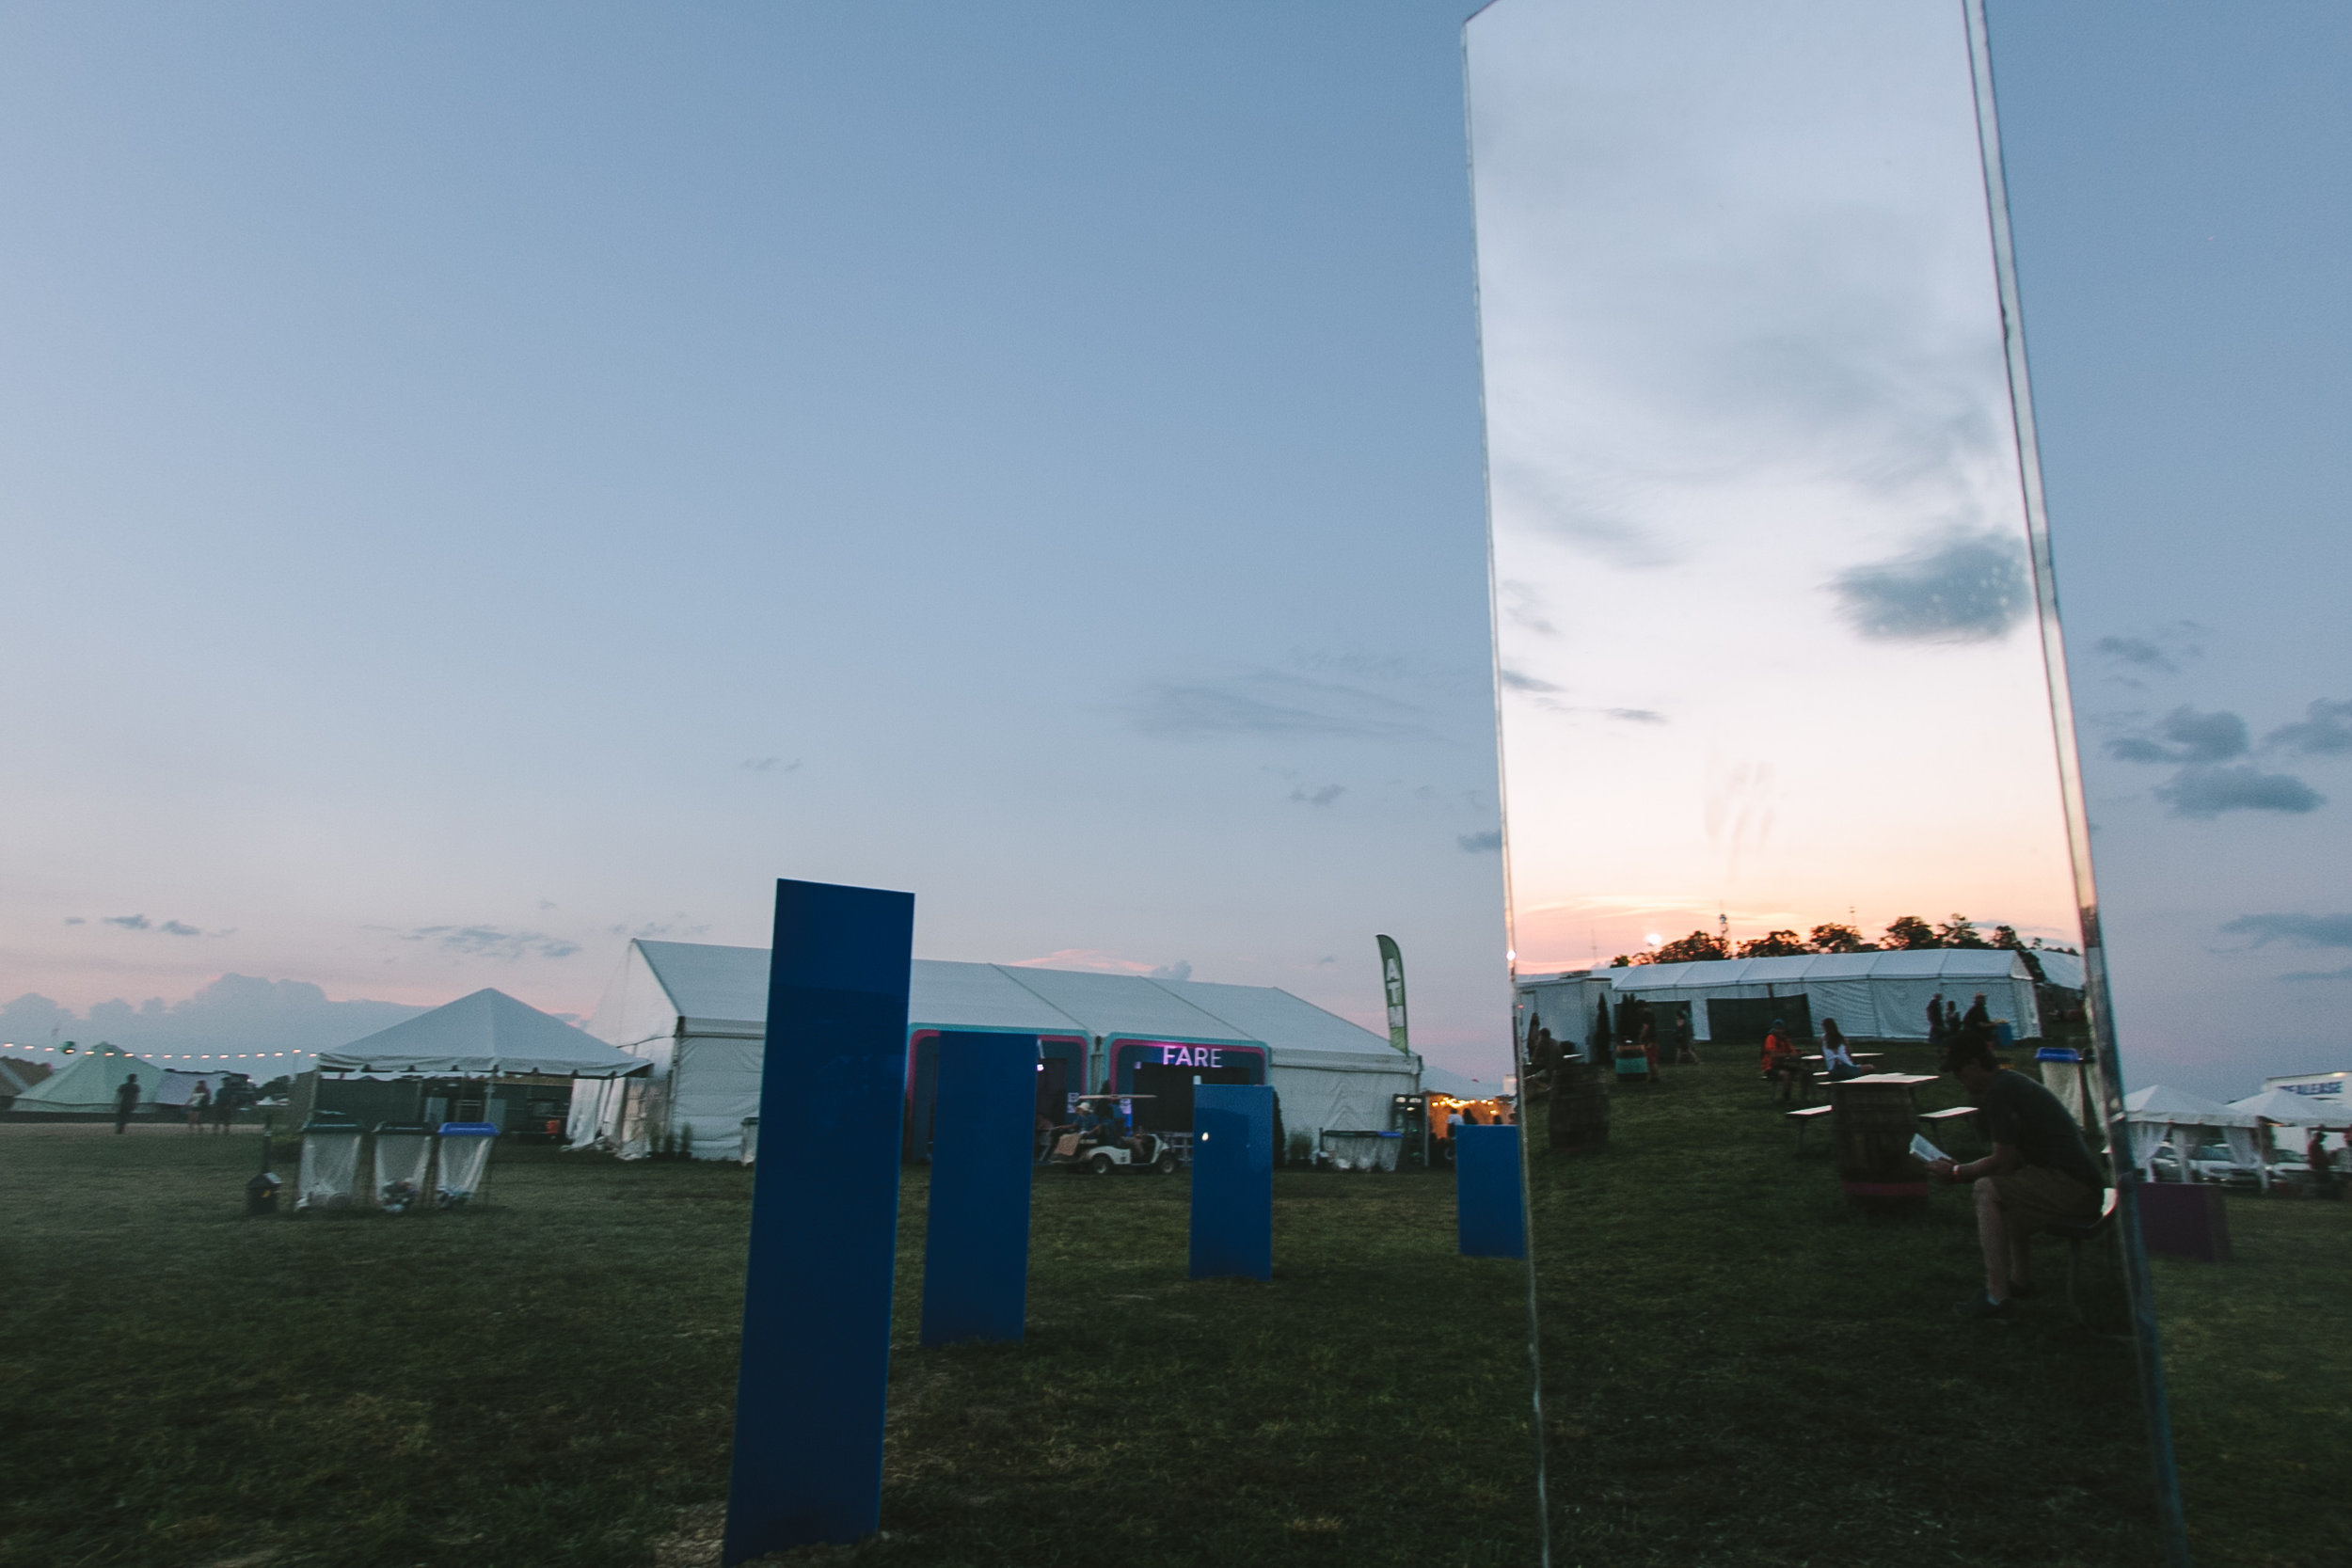 Finished installation at sunset at Bonnaroo